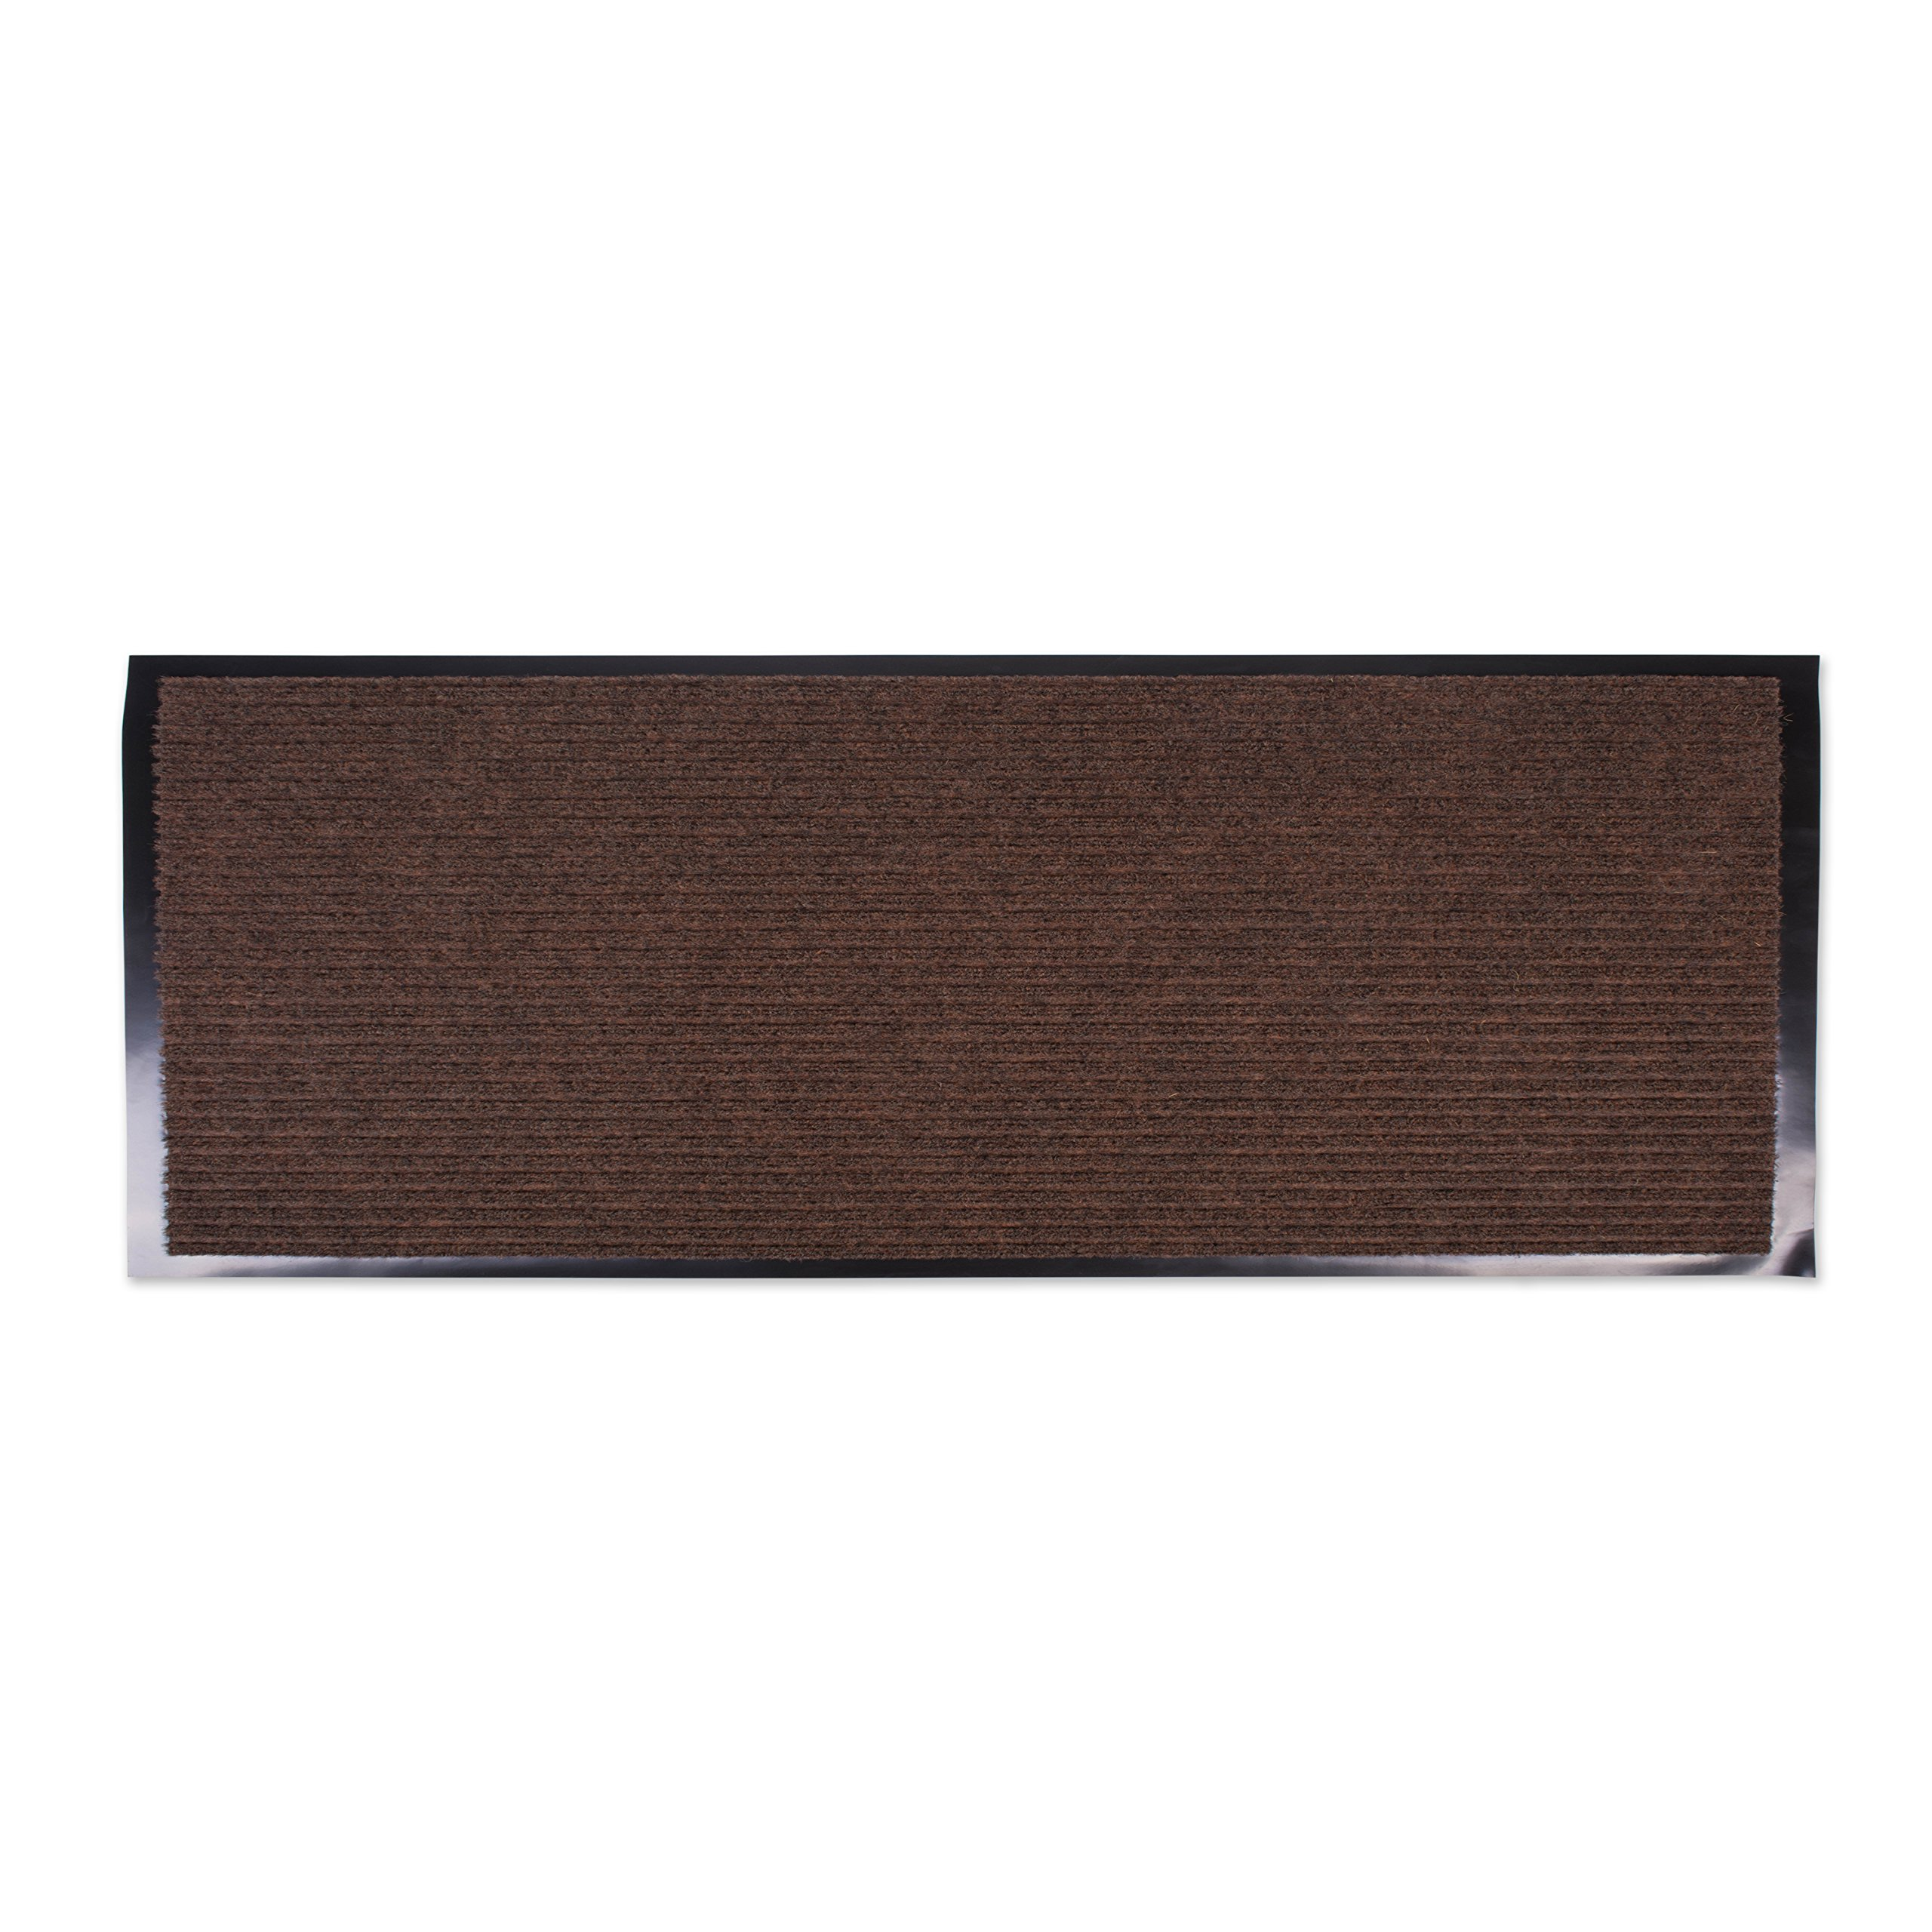 J&M Home Fashions Heavy Duty, Xtra Long Waterproof Ribbed Utility Doormat (22x60 - Brown) Entry Way Shoes Scraper for Patio, Garage, or Front Door, Trap Dirt, Debris, Mud Outside